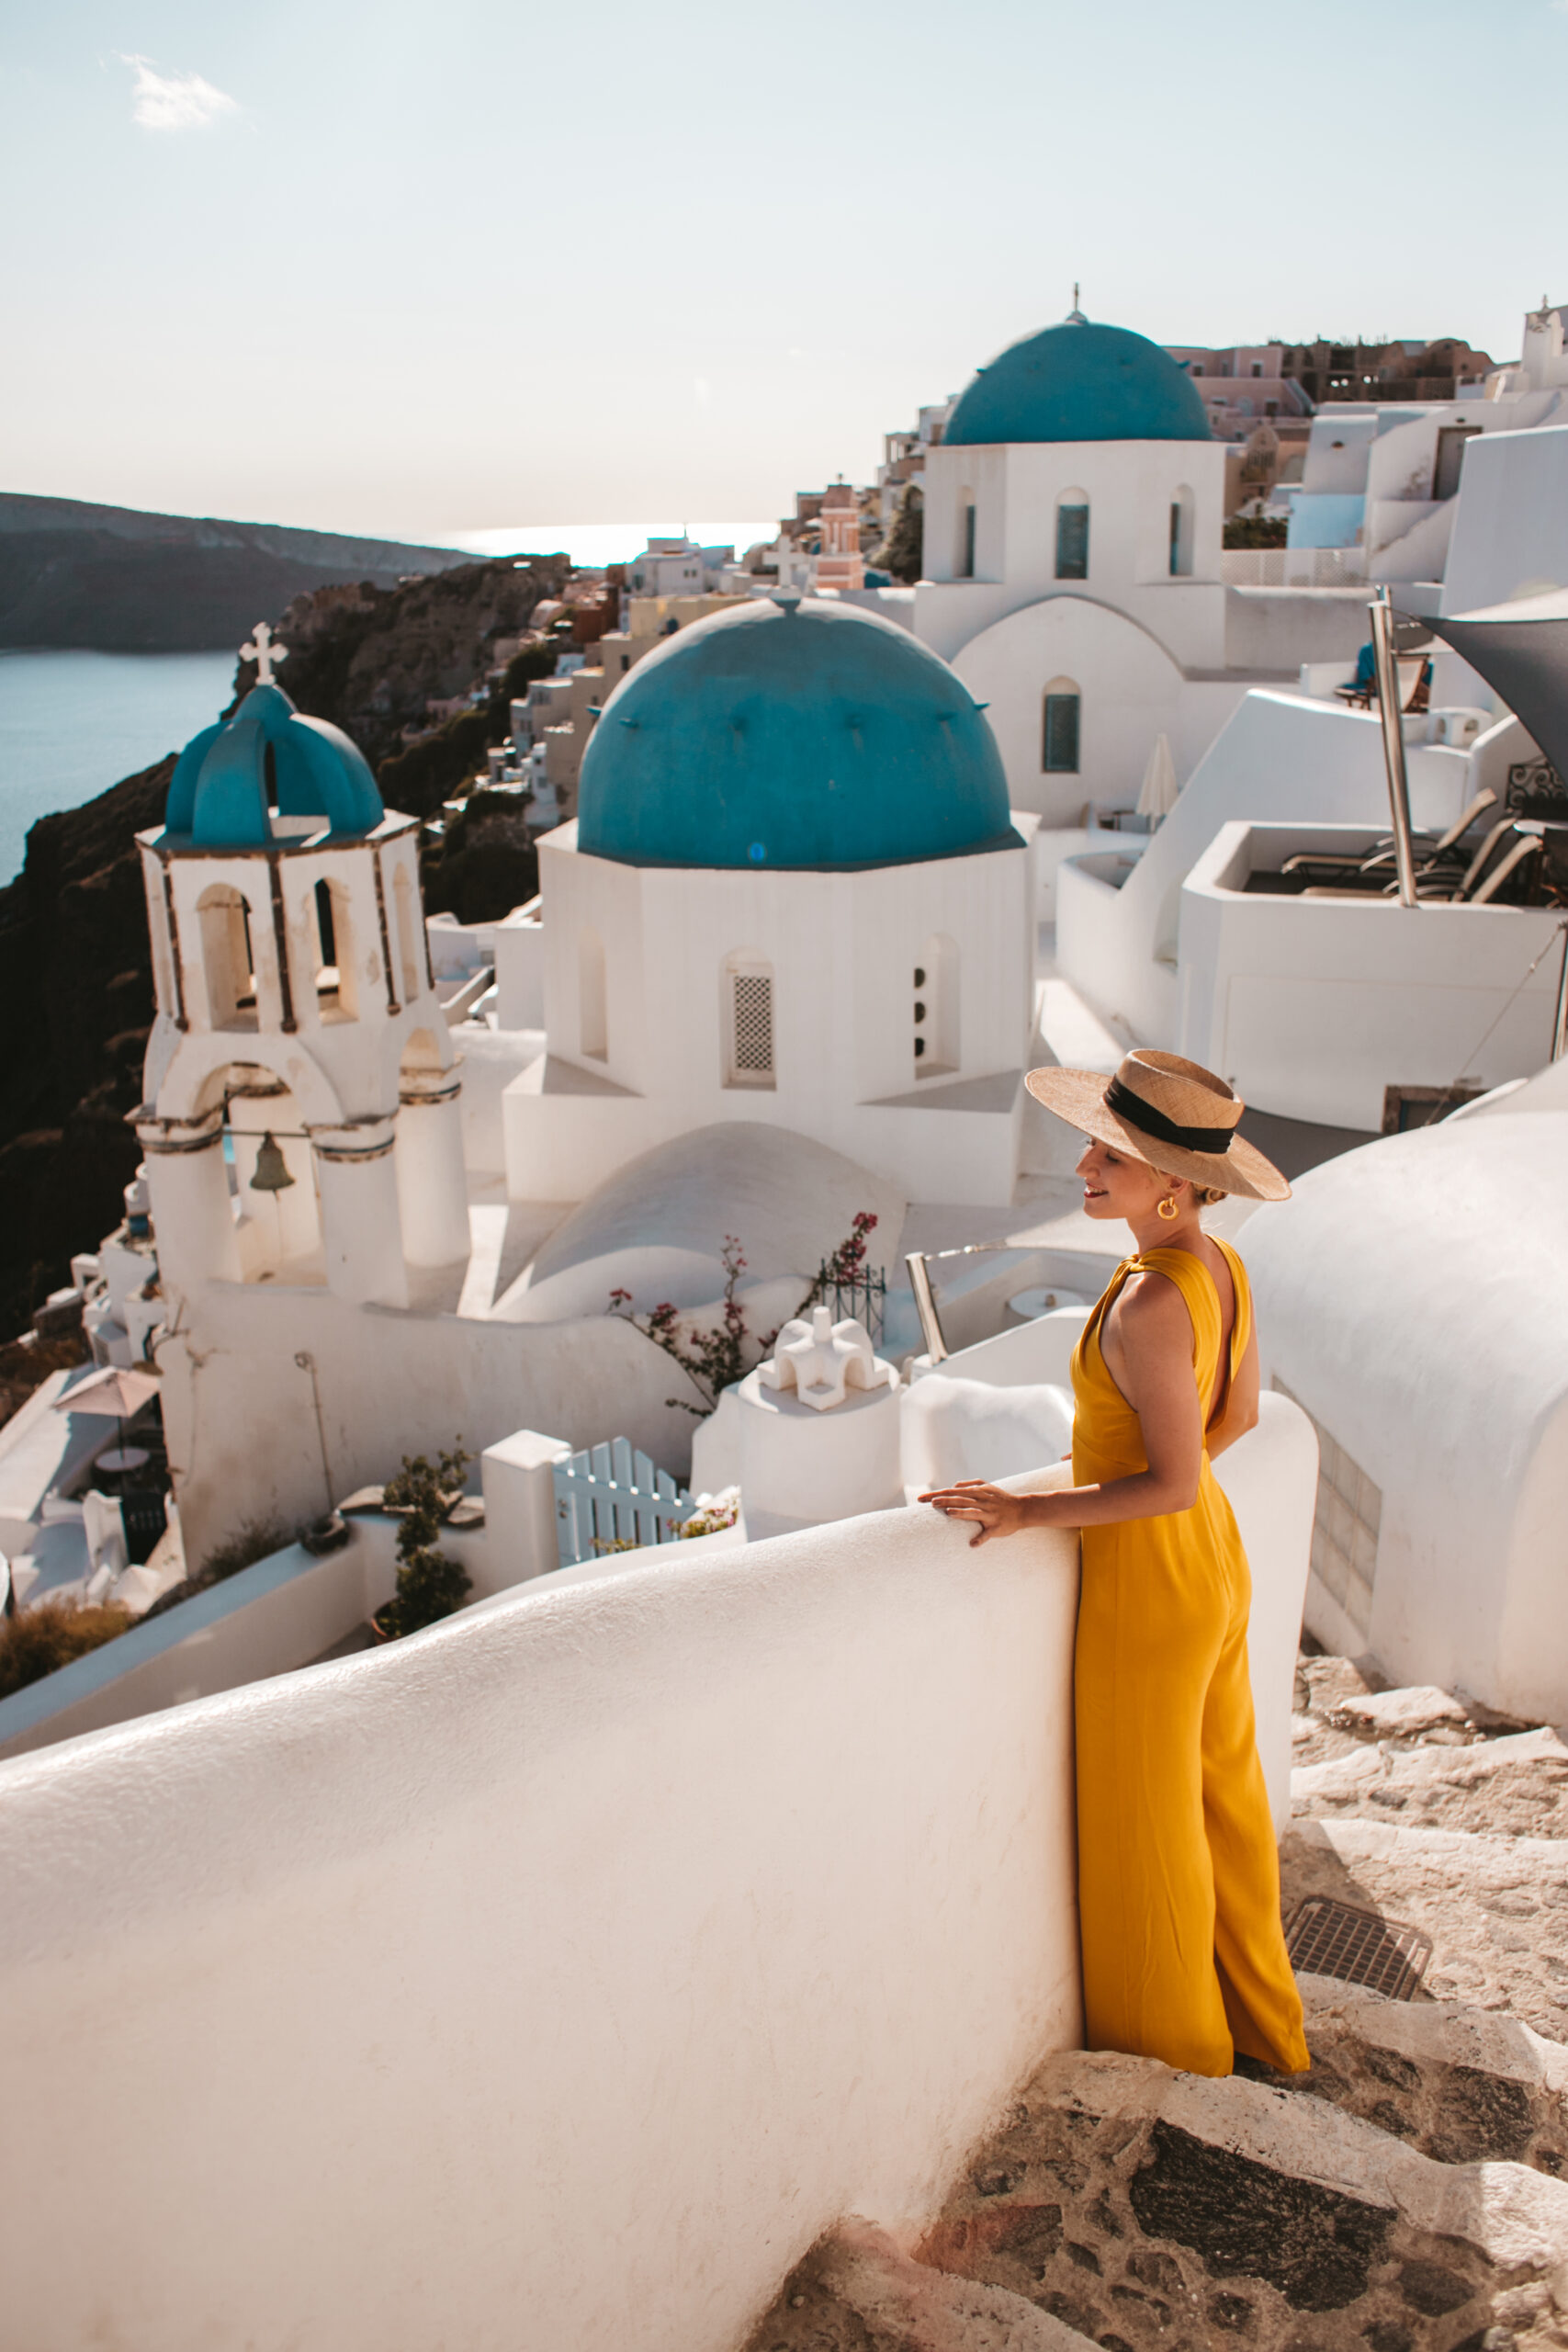 Santorini Oia blue dome church, cerkiew Oia, streets of Oia, most instagrammable places Santorini